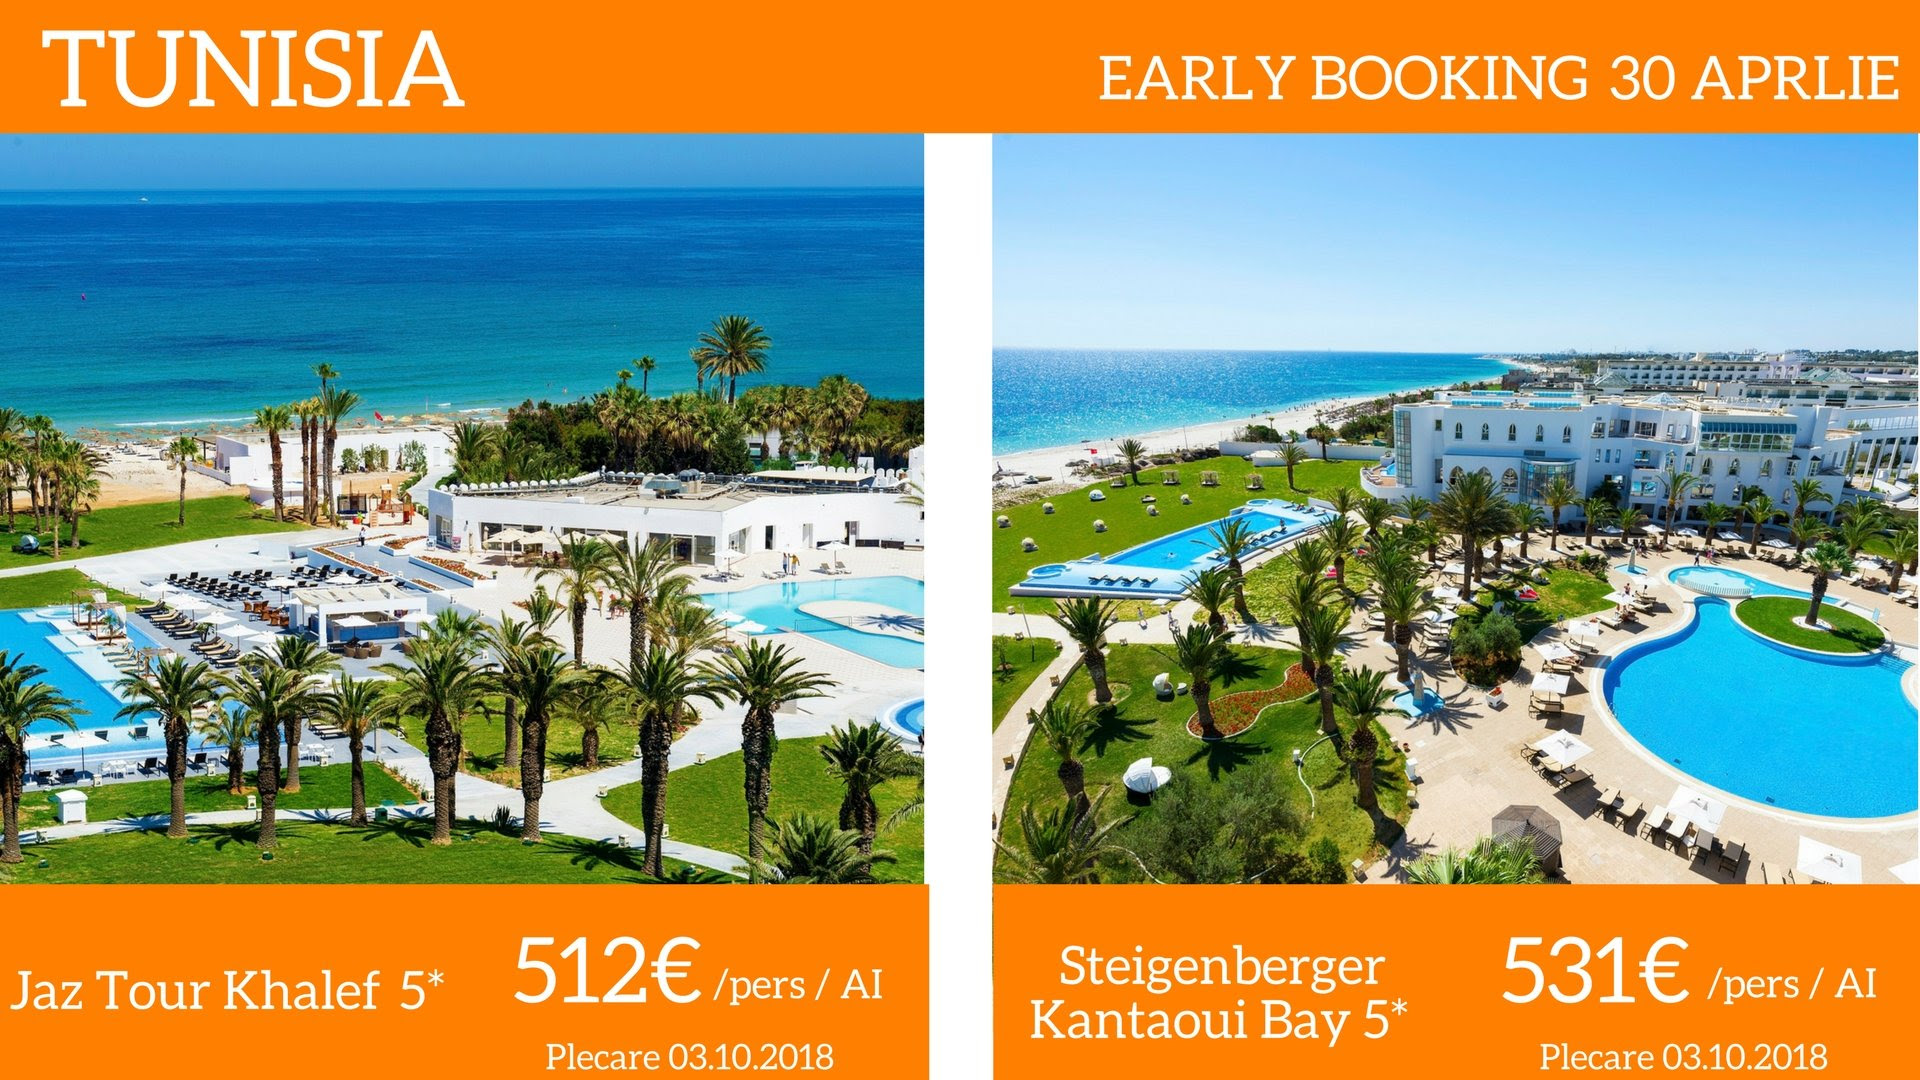 TUNISIA early booking